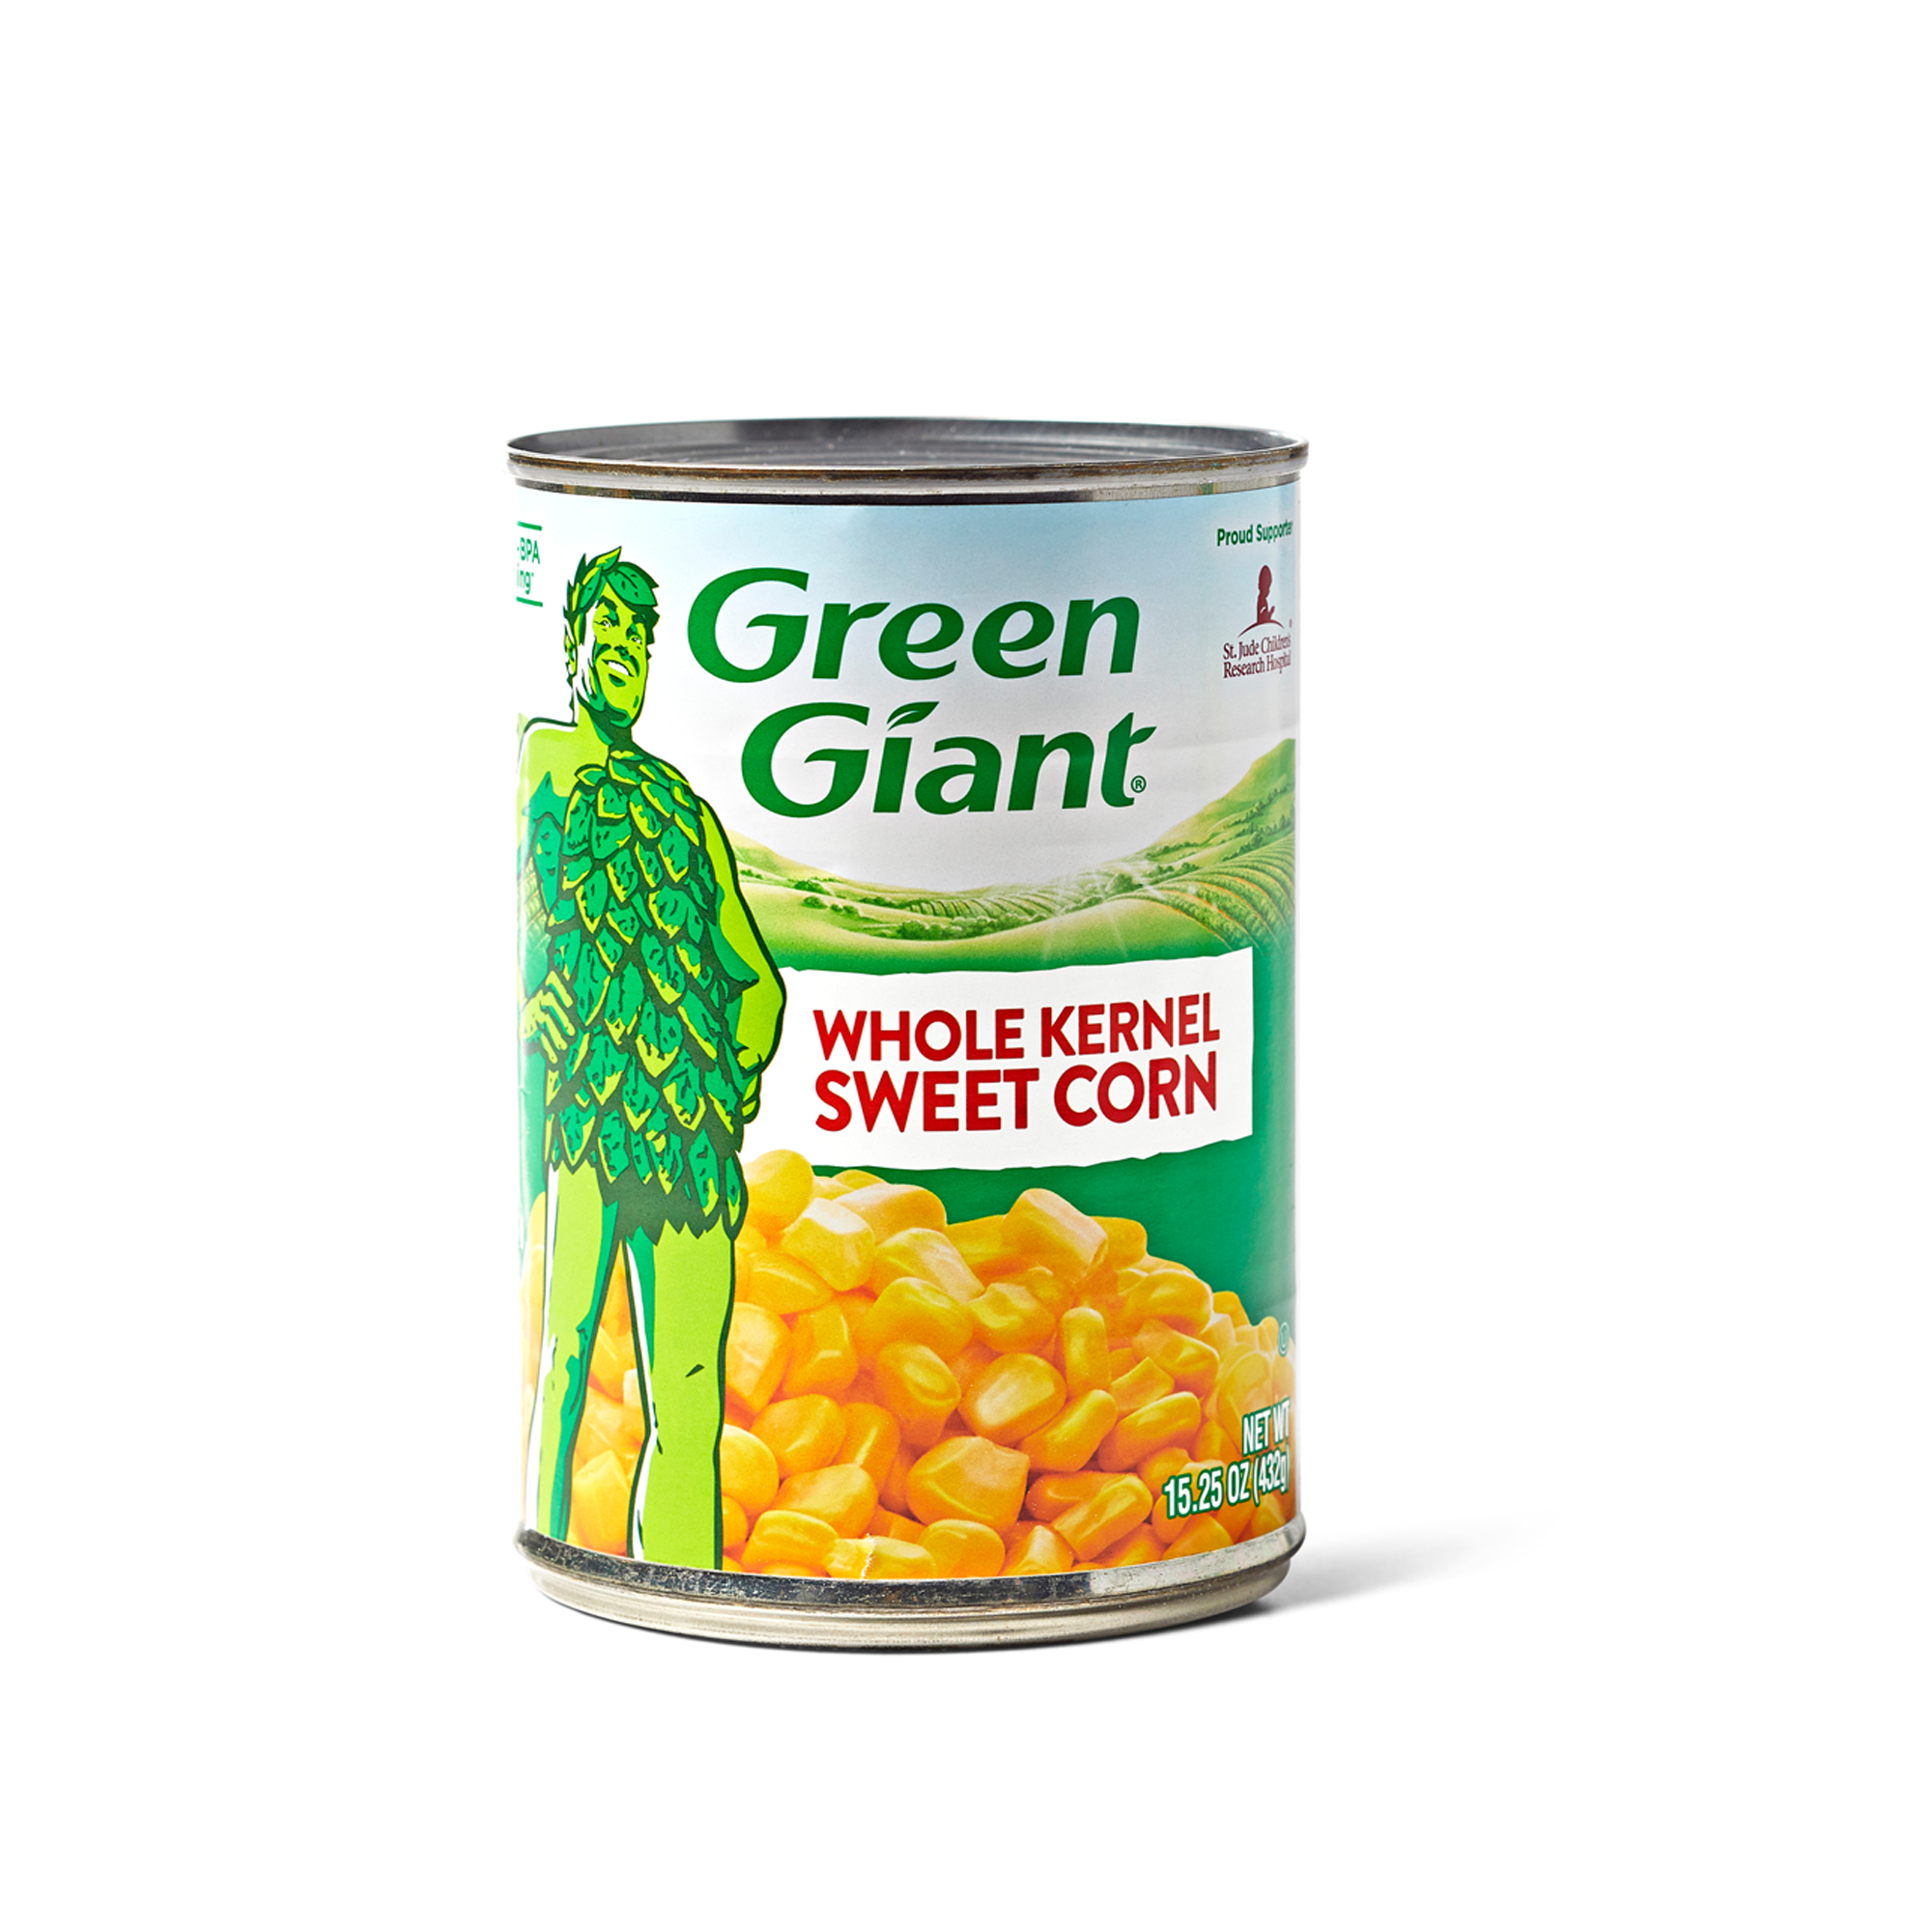 Green Giant canned corn